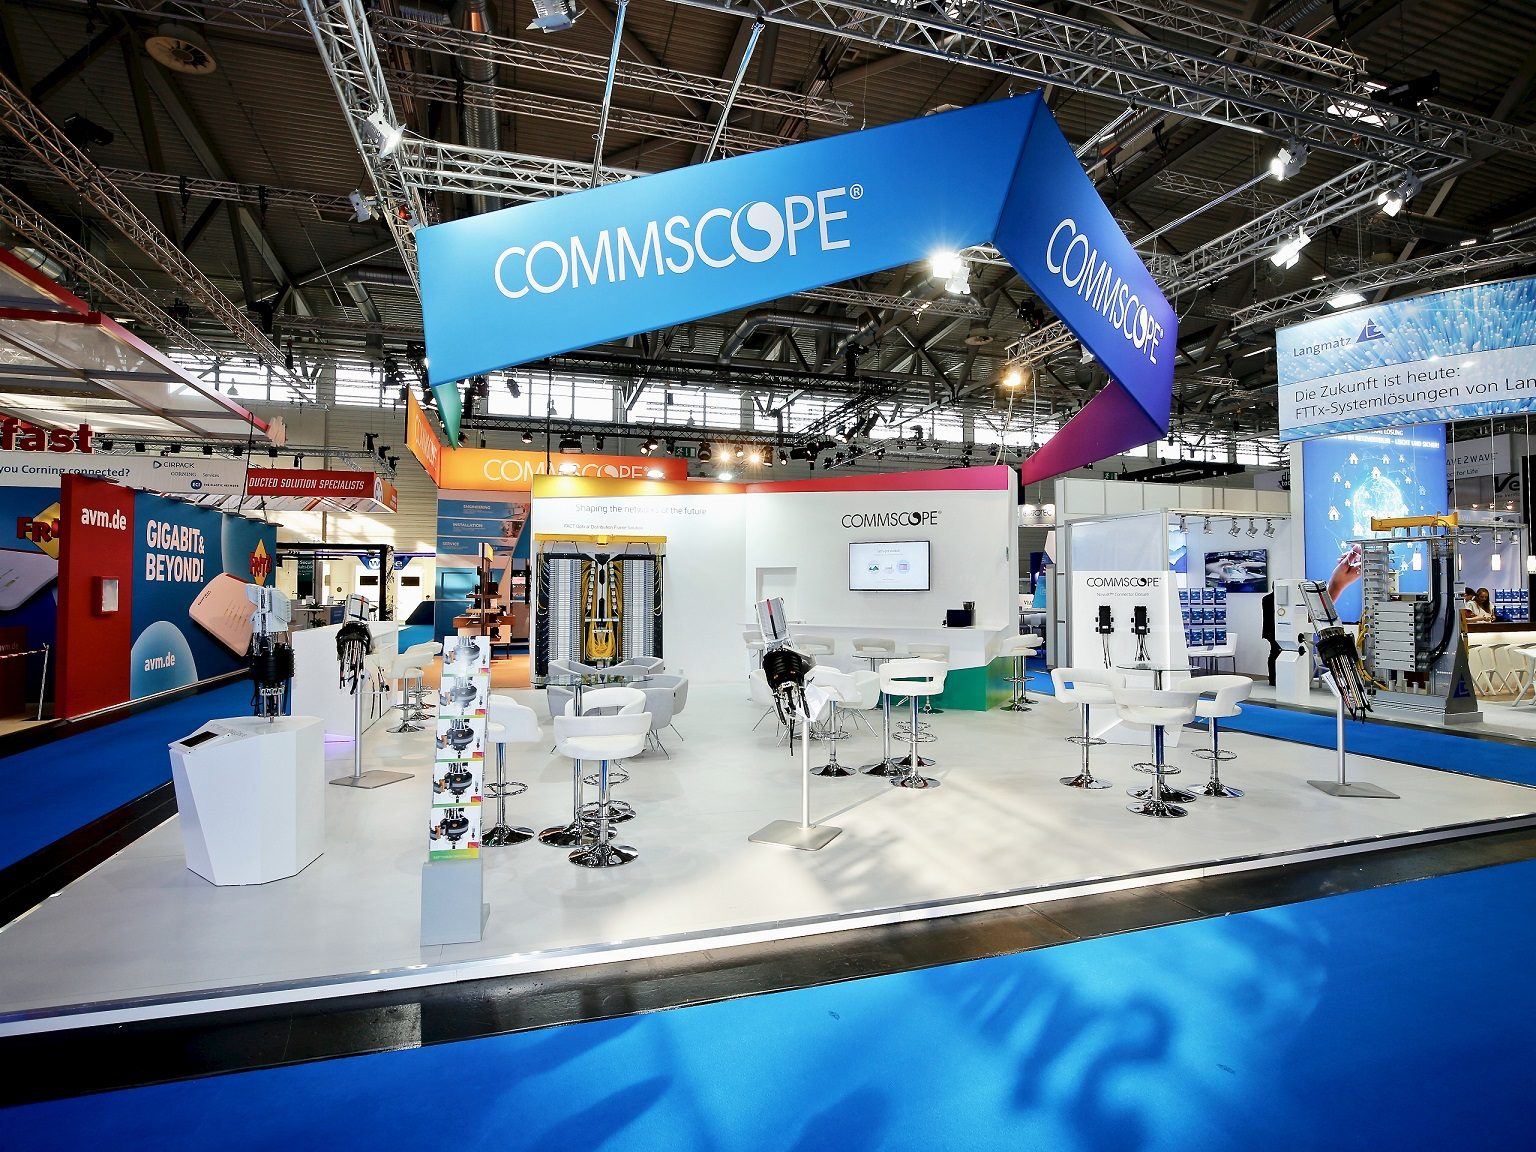 Pro Expo Communication Stands Events : Exhibition stand design and building barcelona pro expo